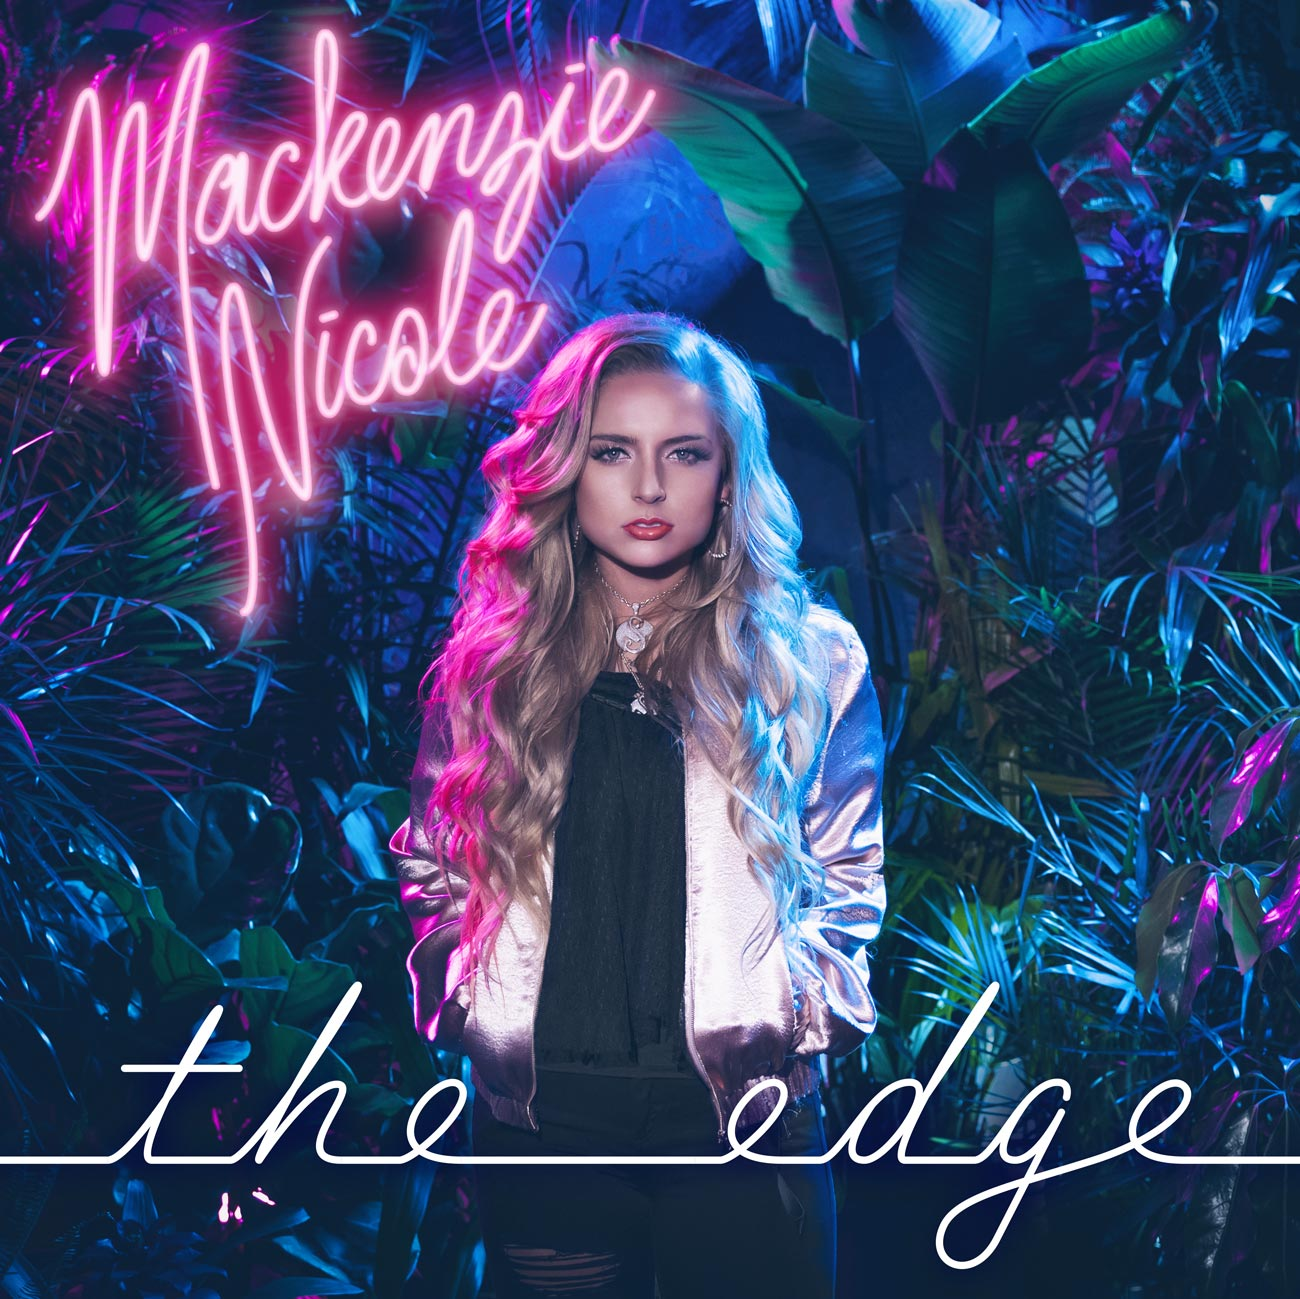 Mackenzie nicole the edge full